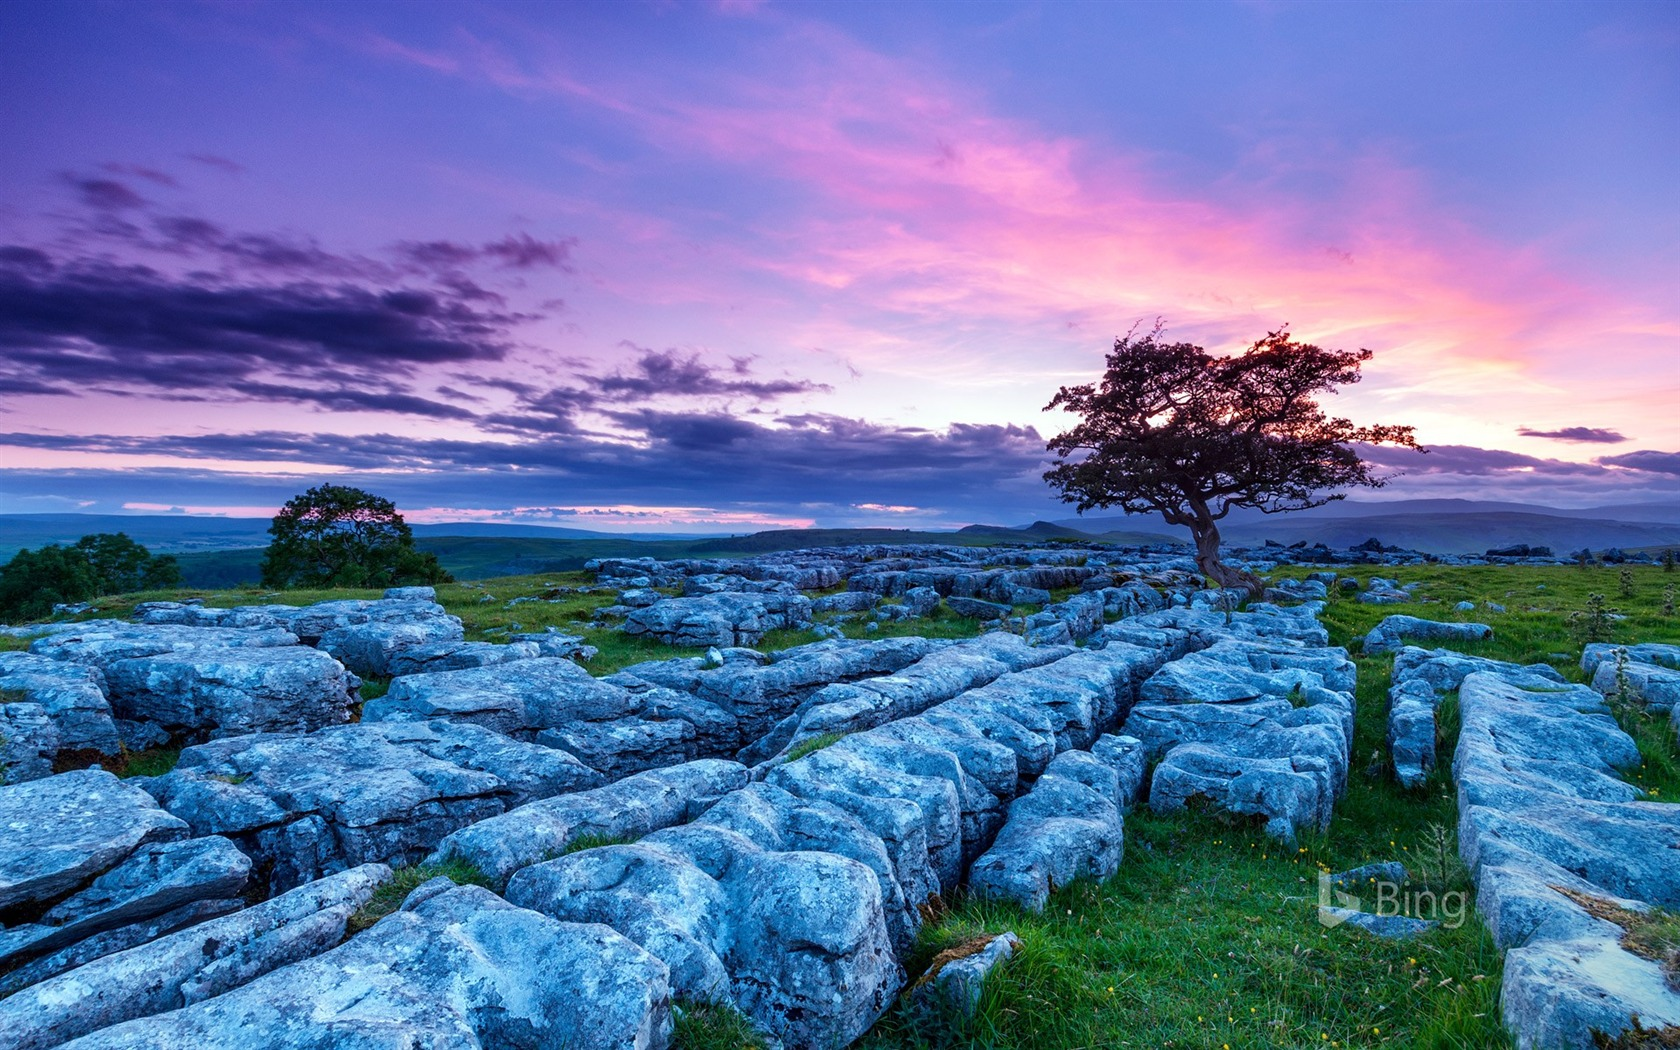 Os X Lion Wallpaper Hd For Iphone England Yorkshire Dales National Park Stones 2018 Bing